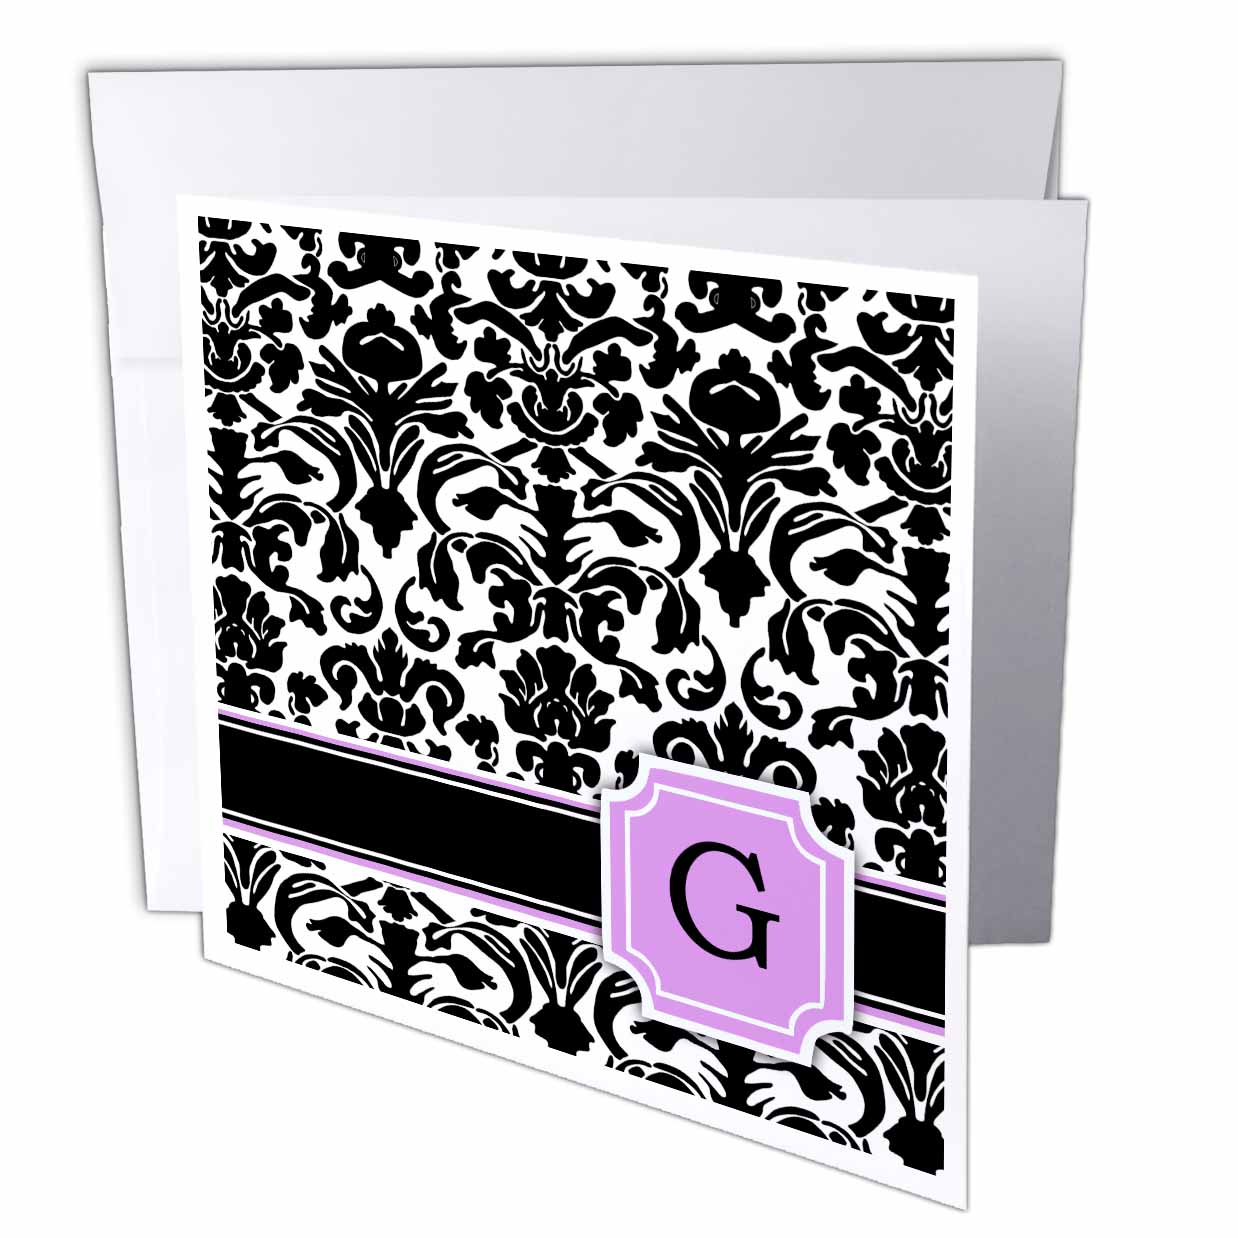 3dRose Personal initial G monogrammed pink black and white damask pattern girly stylish personalized letter, Greeting Cards, 6 x 6 inches, set of 6